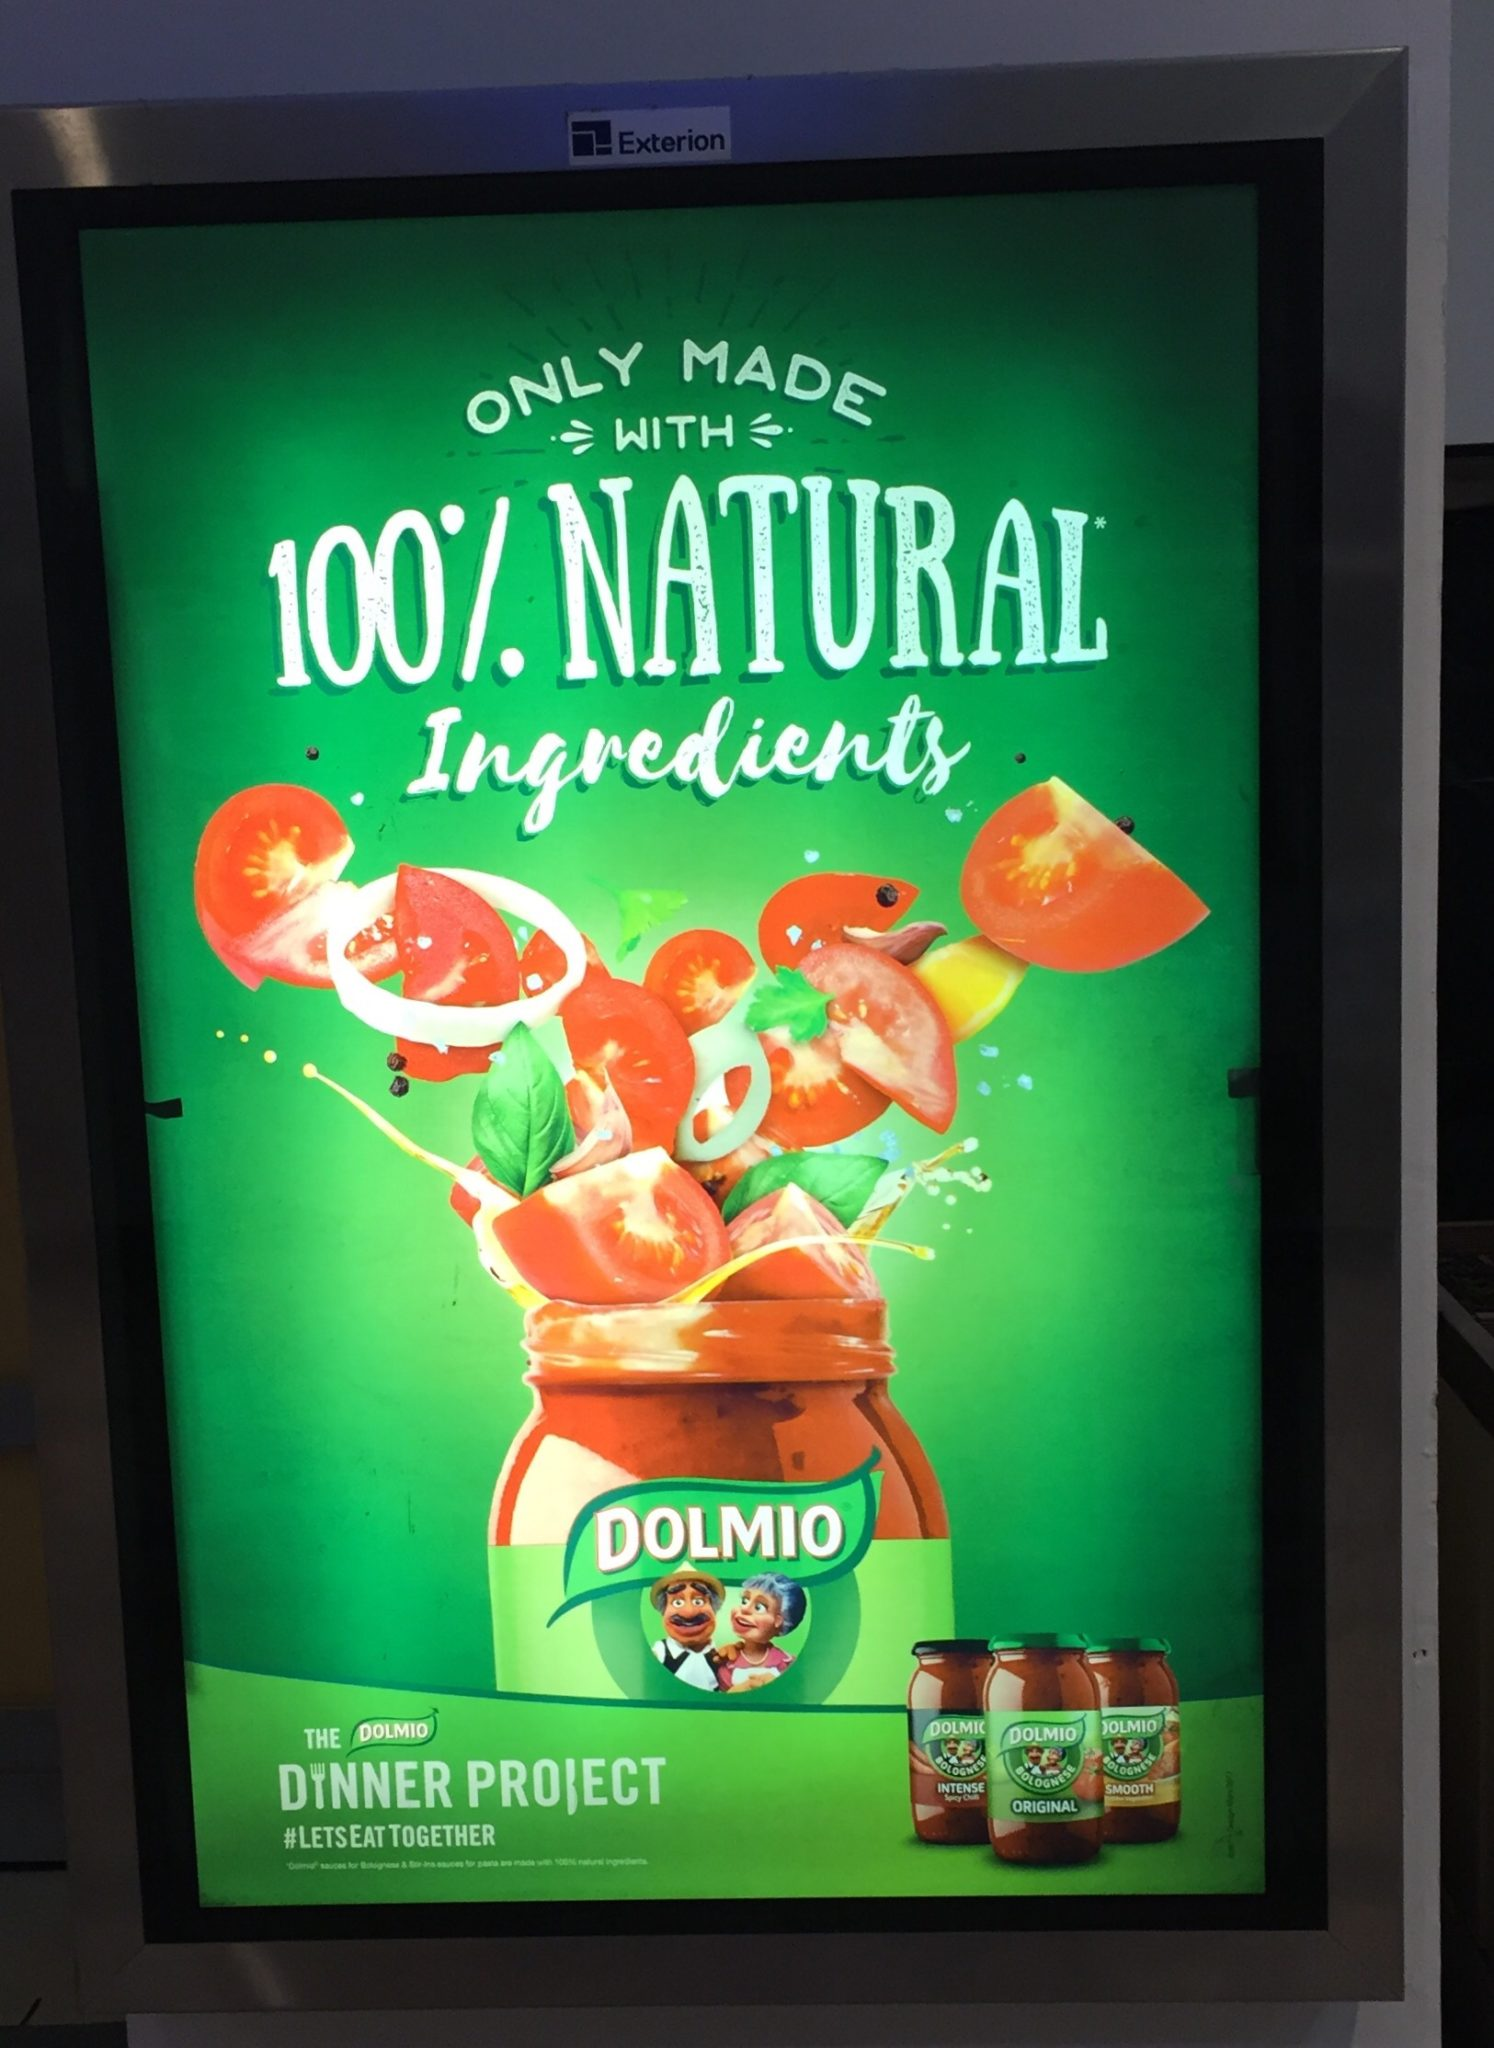 Dolmio – only made with 100% natural ingredients